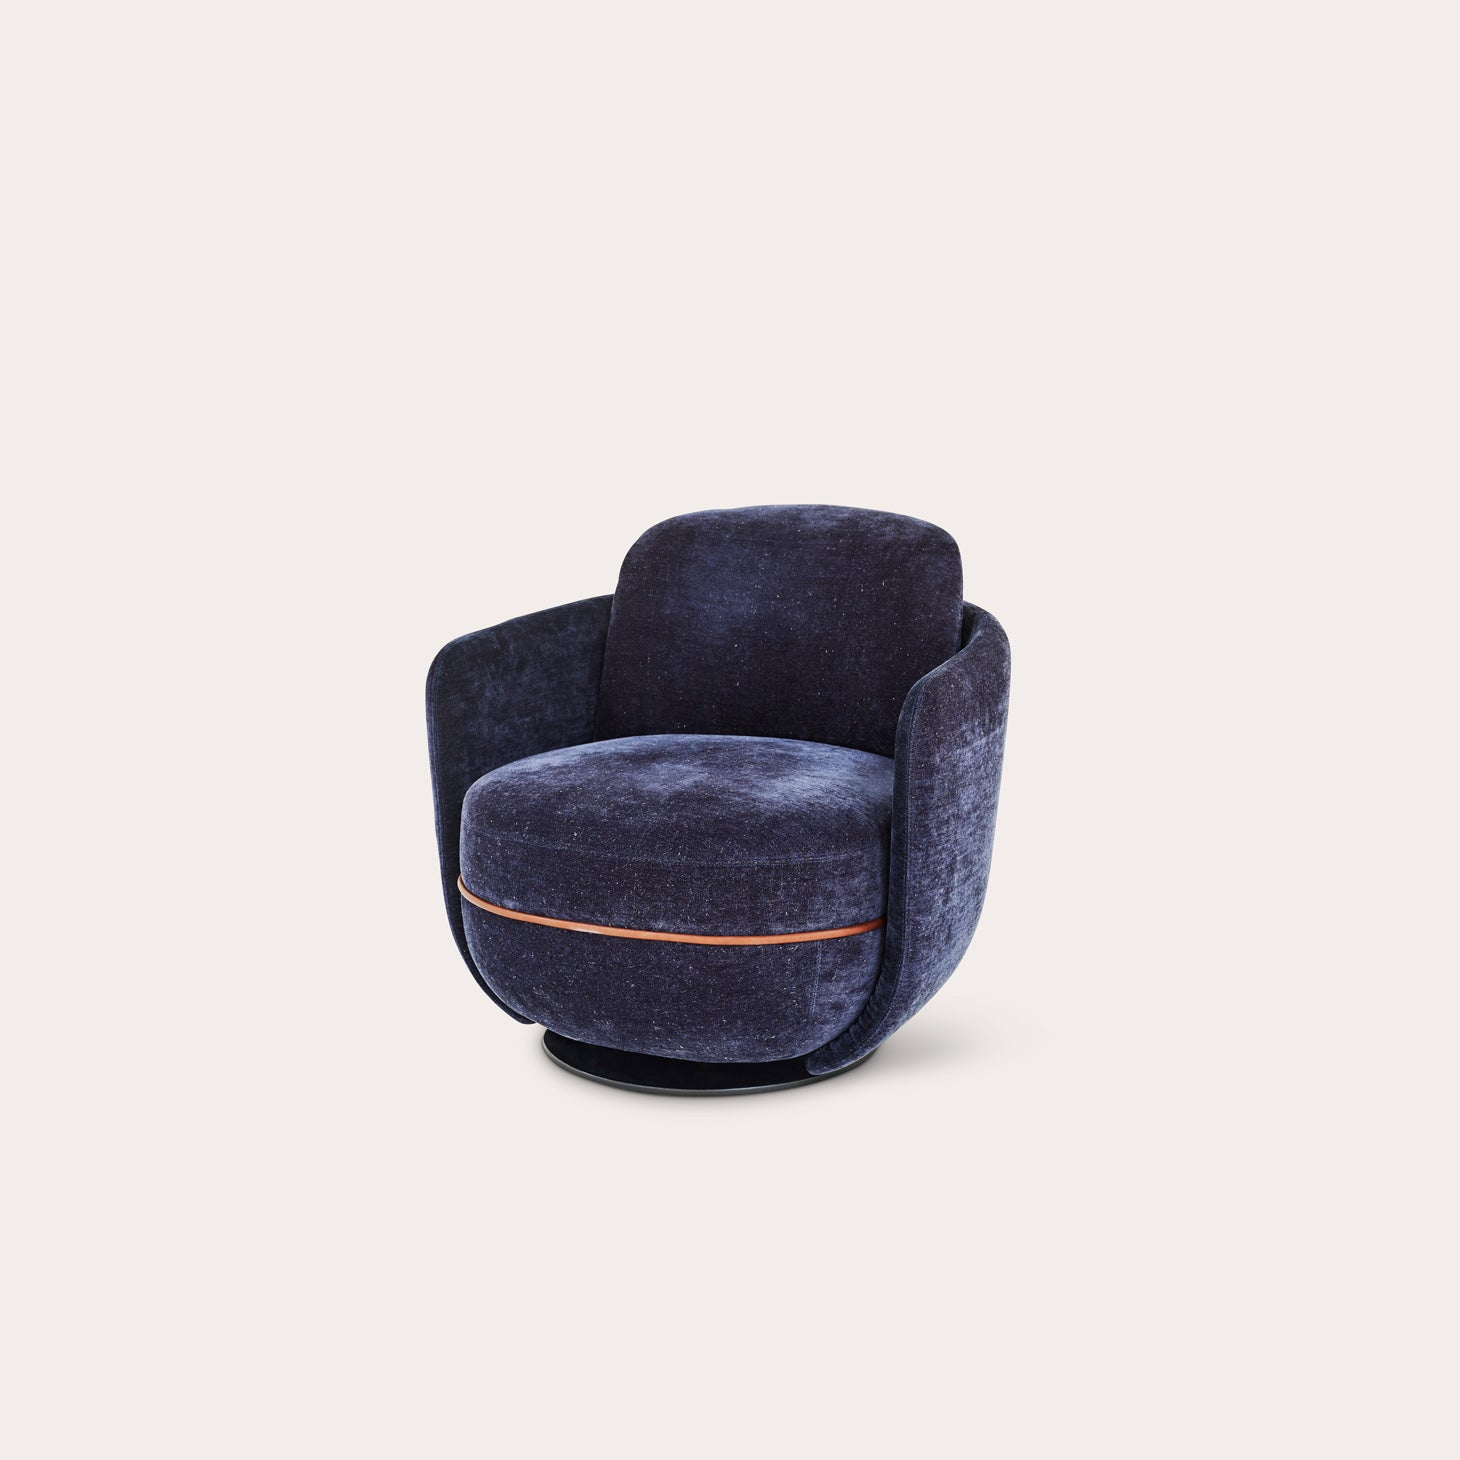 Miles Lounge Chair Seating Sebastian Herkner Designer Furniture Sku: 758-240-10219